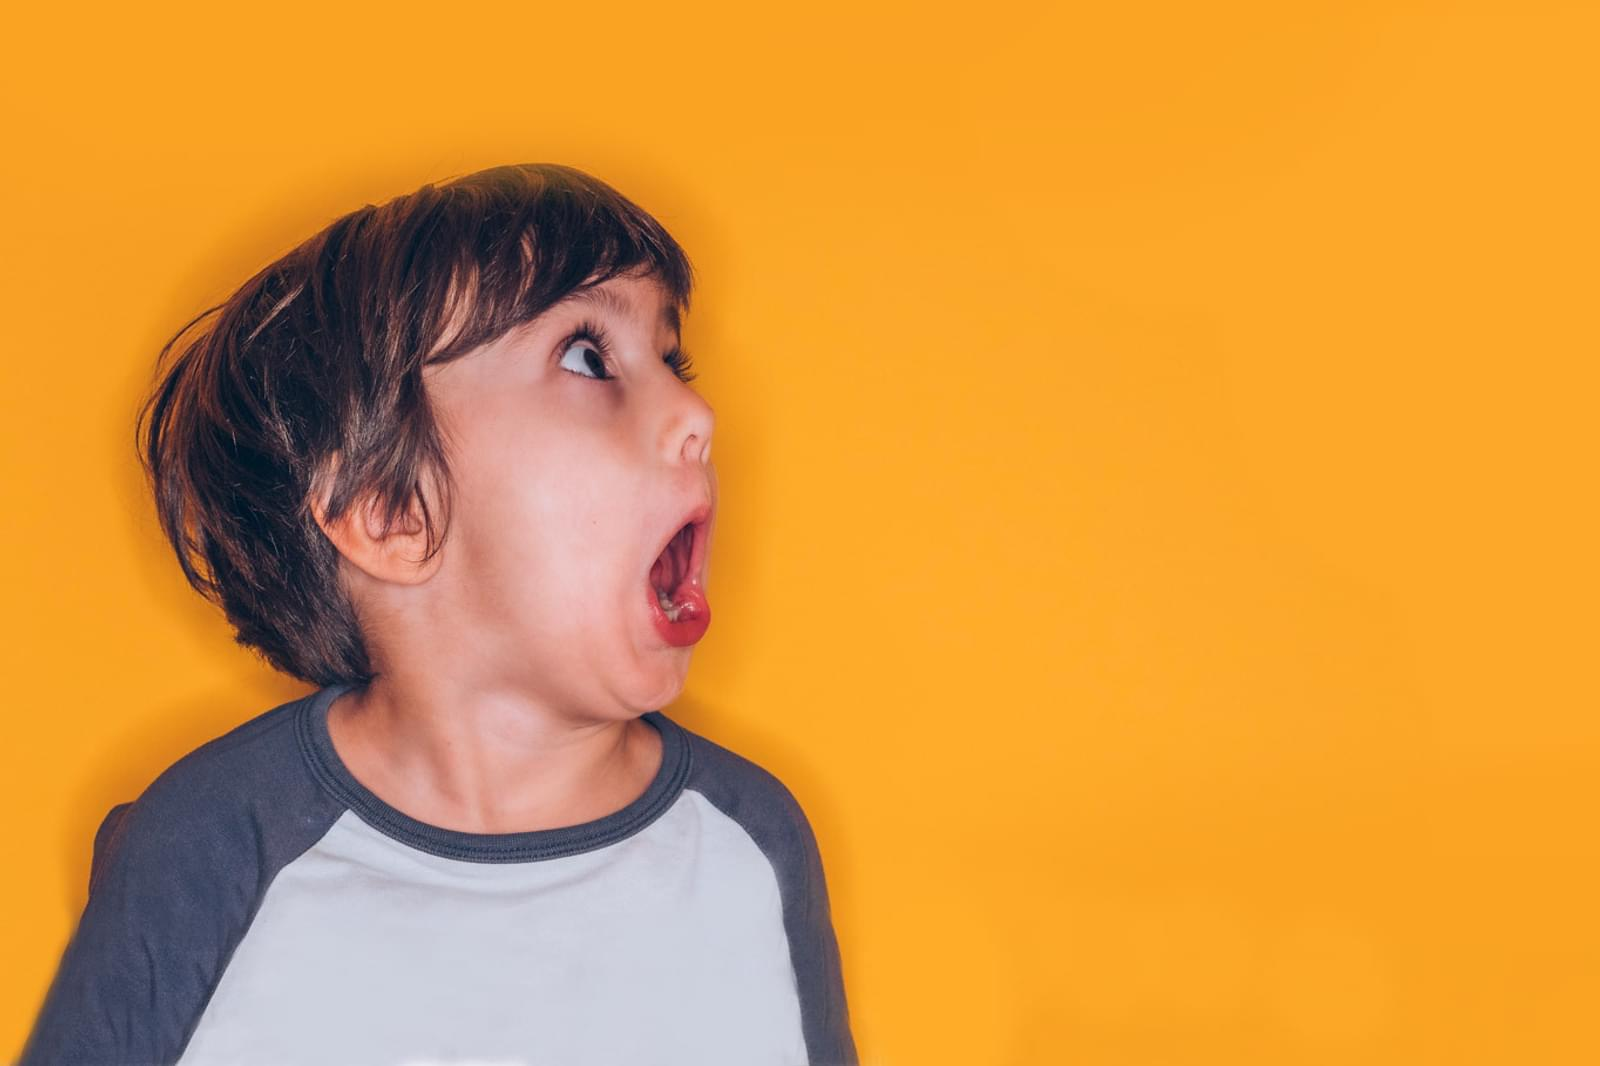 boy shouting on a yellow background